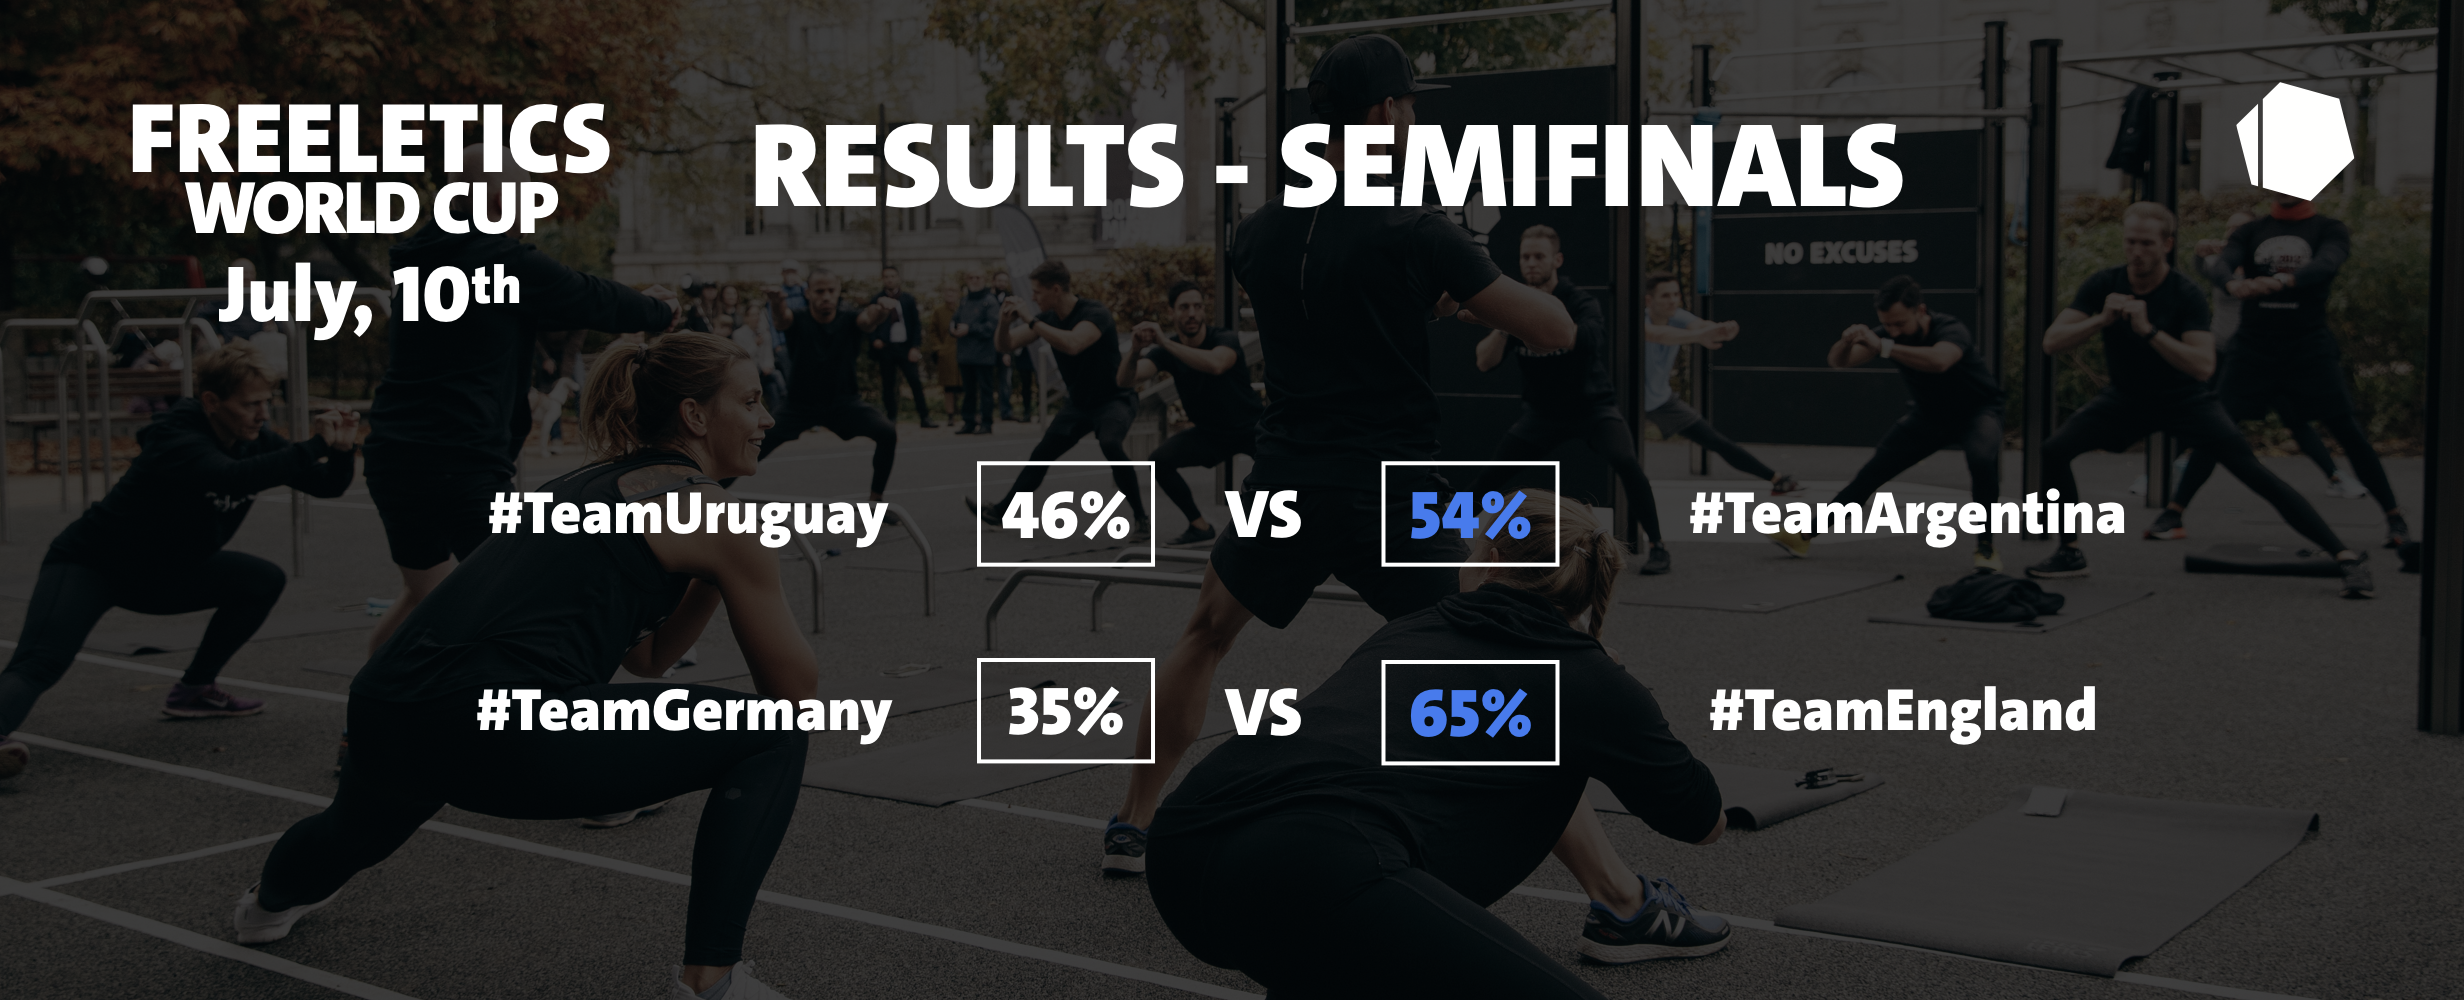 Results - Semifinals.001